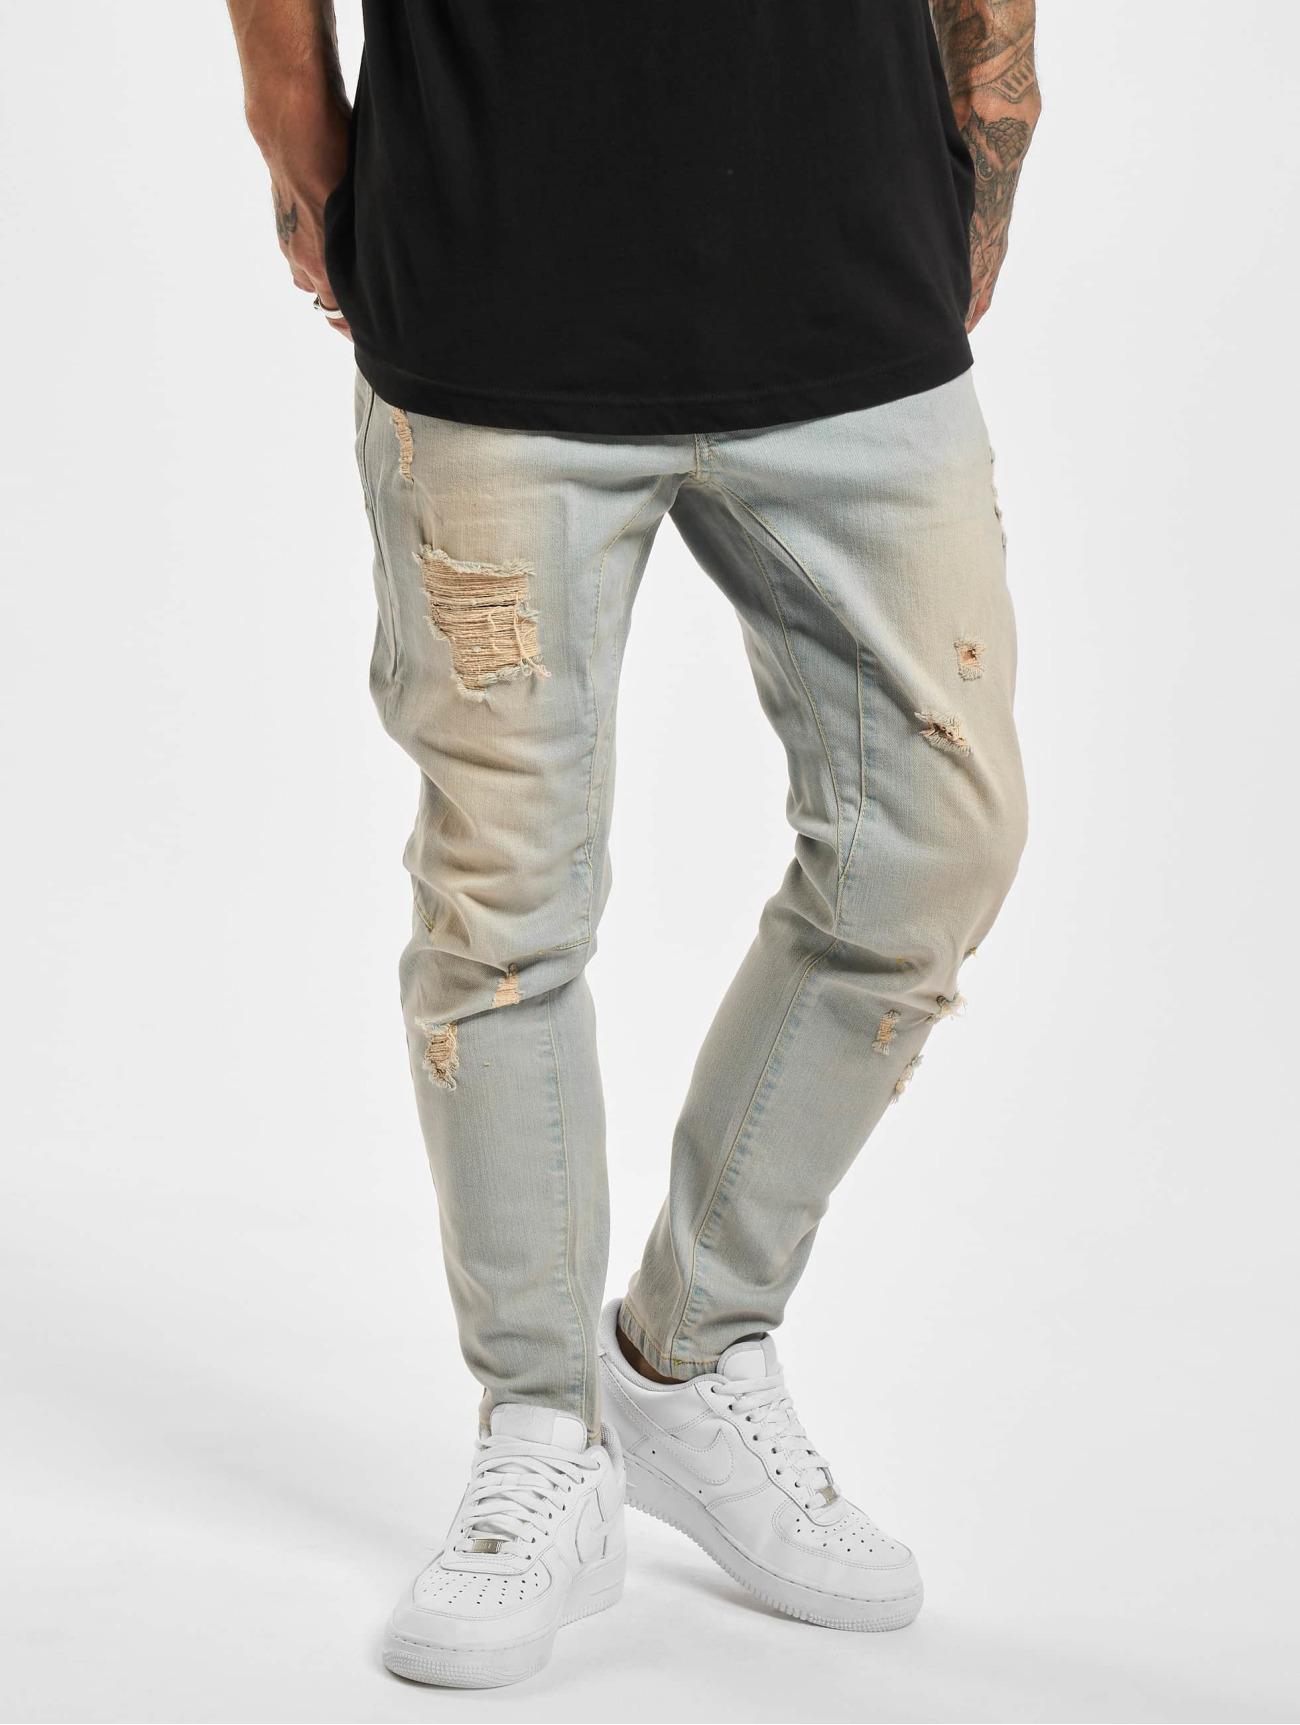 VSCT Clubwear  New Keanu Spencer Hybrid  bleu Homme Jean coupe droite  765435 Homme Jeans